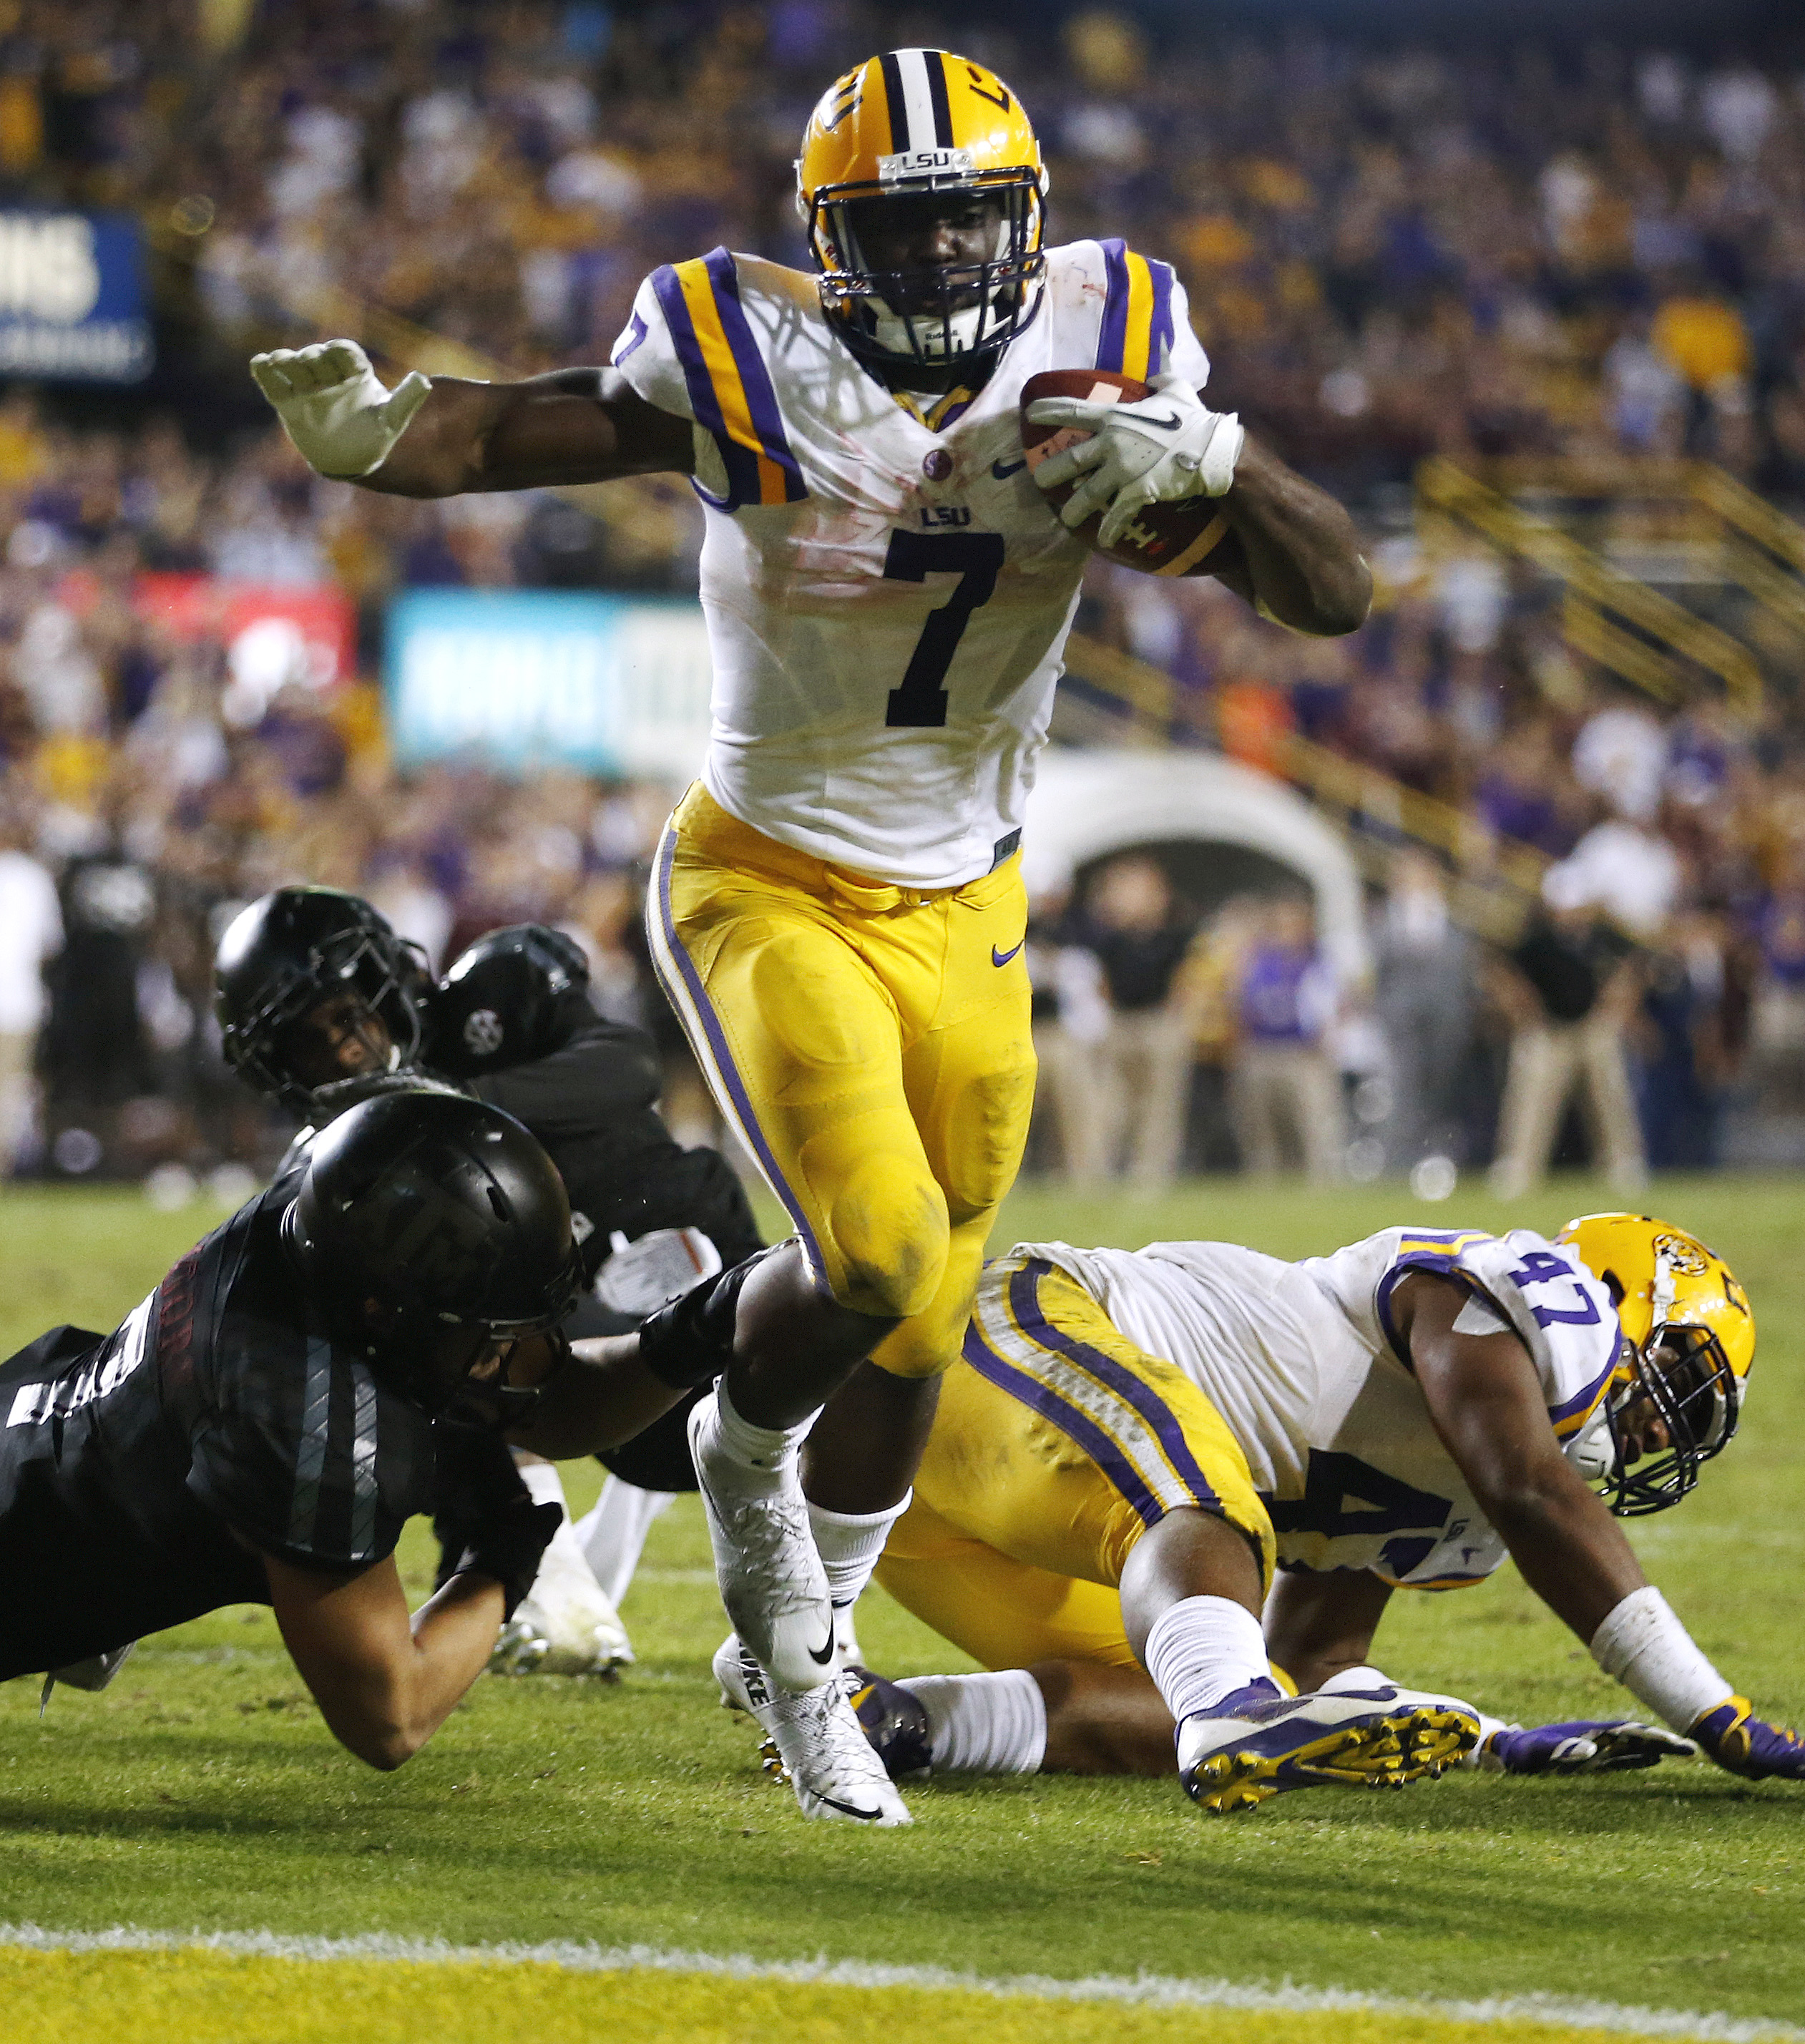 FILE - In this Saturday, Nov. 28, 2015, file photo, LSU running back Leonard Fournette (7) scores a touchdown during the second half of an NCAA college football game against Texas A&M in Baton Rouge, La. Fournette has been named to the AP All-America foot